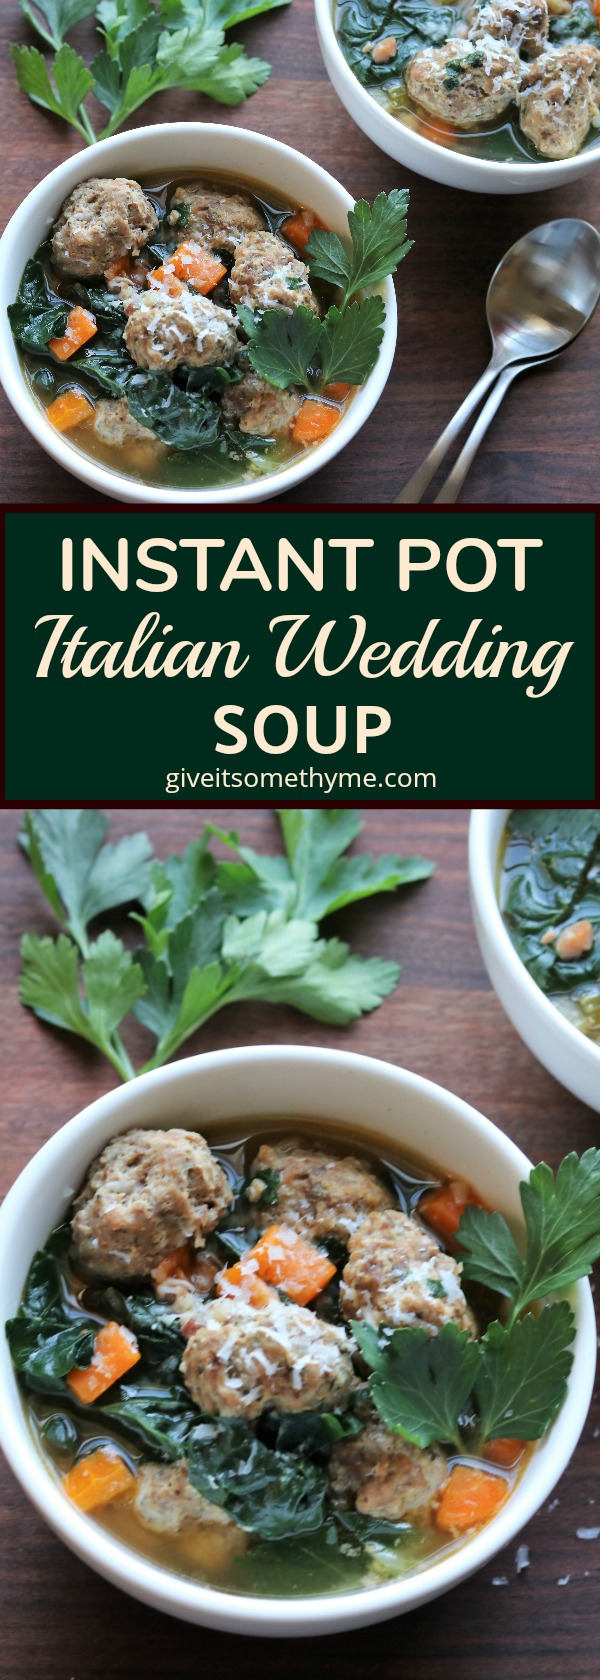 Instant Pot Italian Wedding Soup - Give it Some Thyme